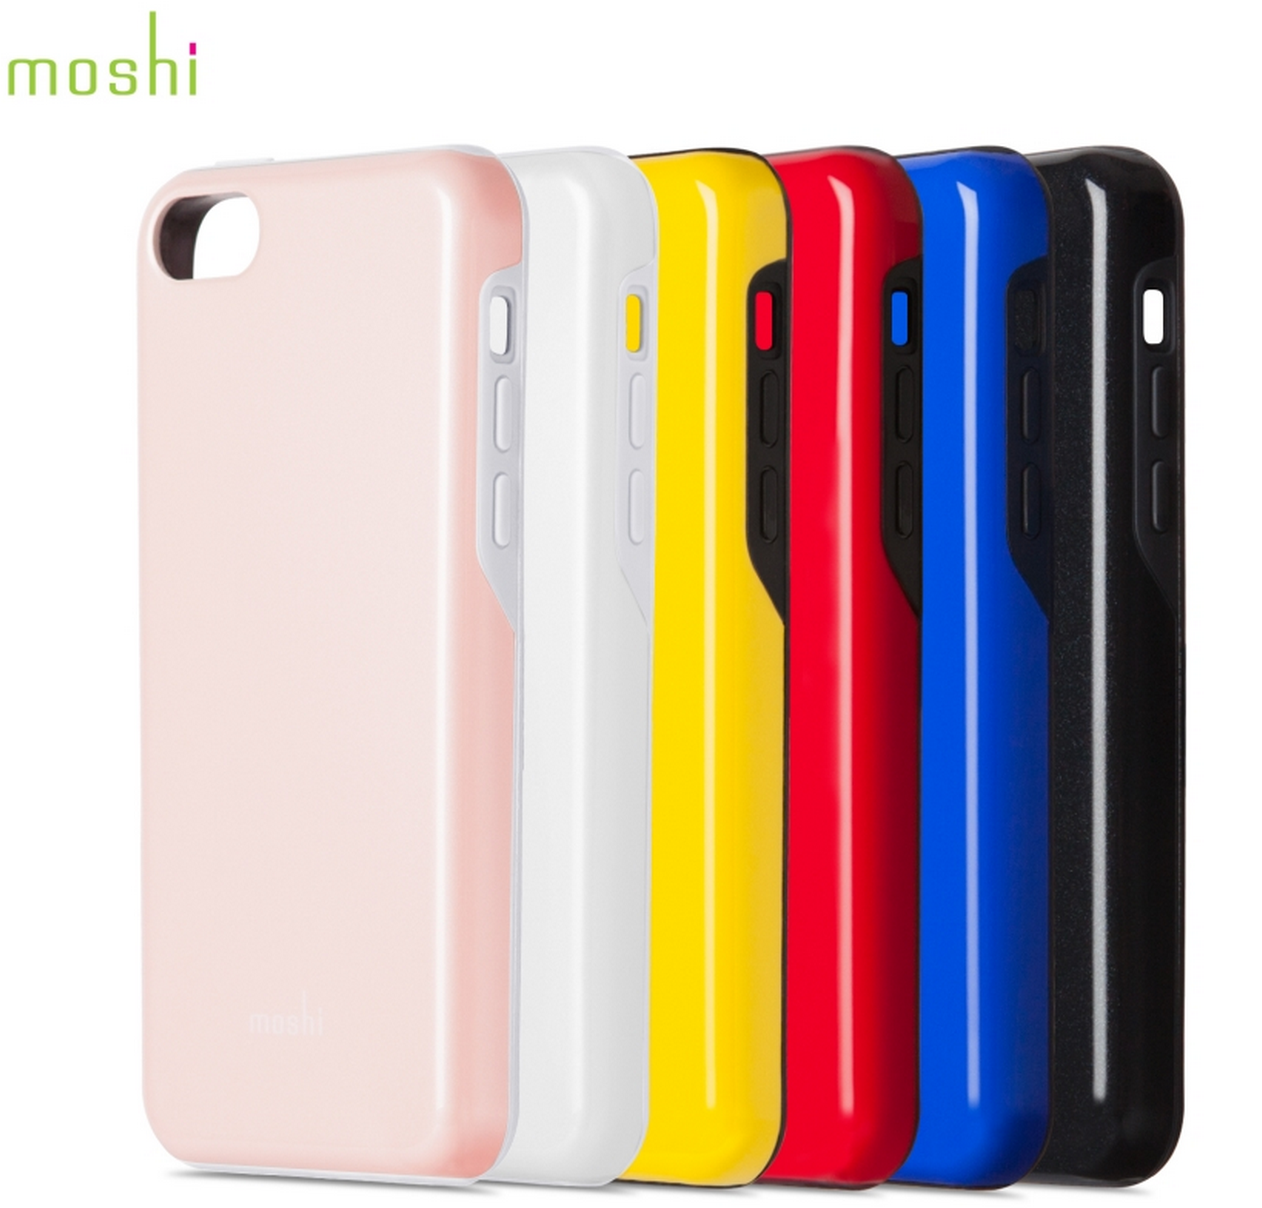 iGlaze-Remix-Moshi-iPhone-5c-cases